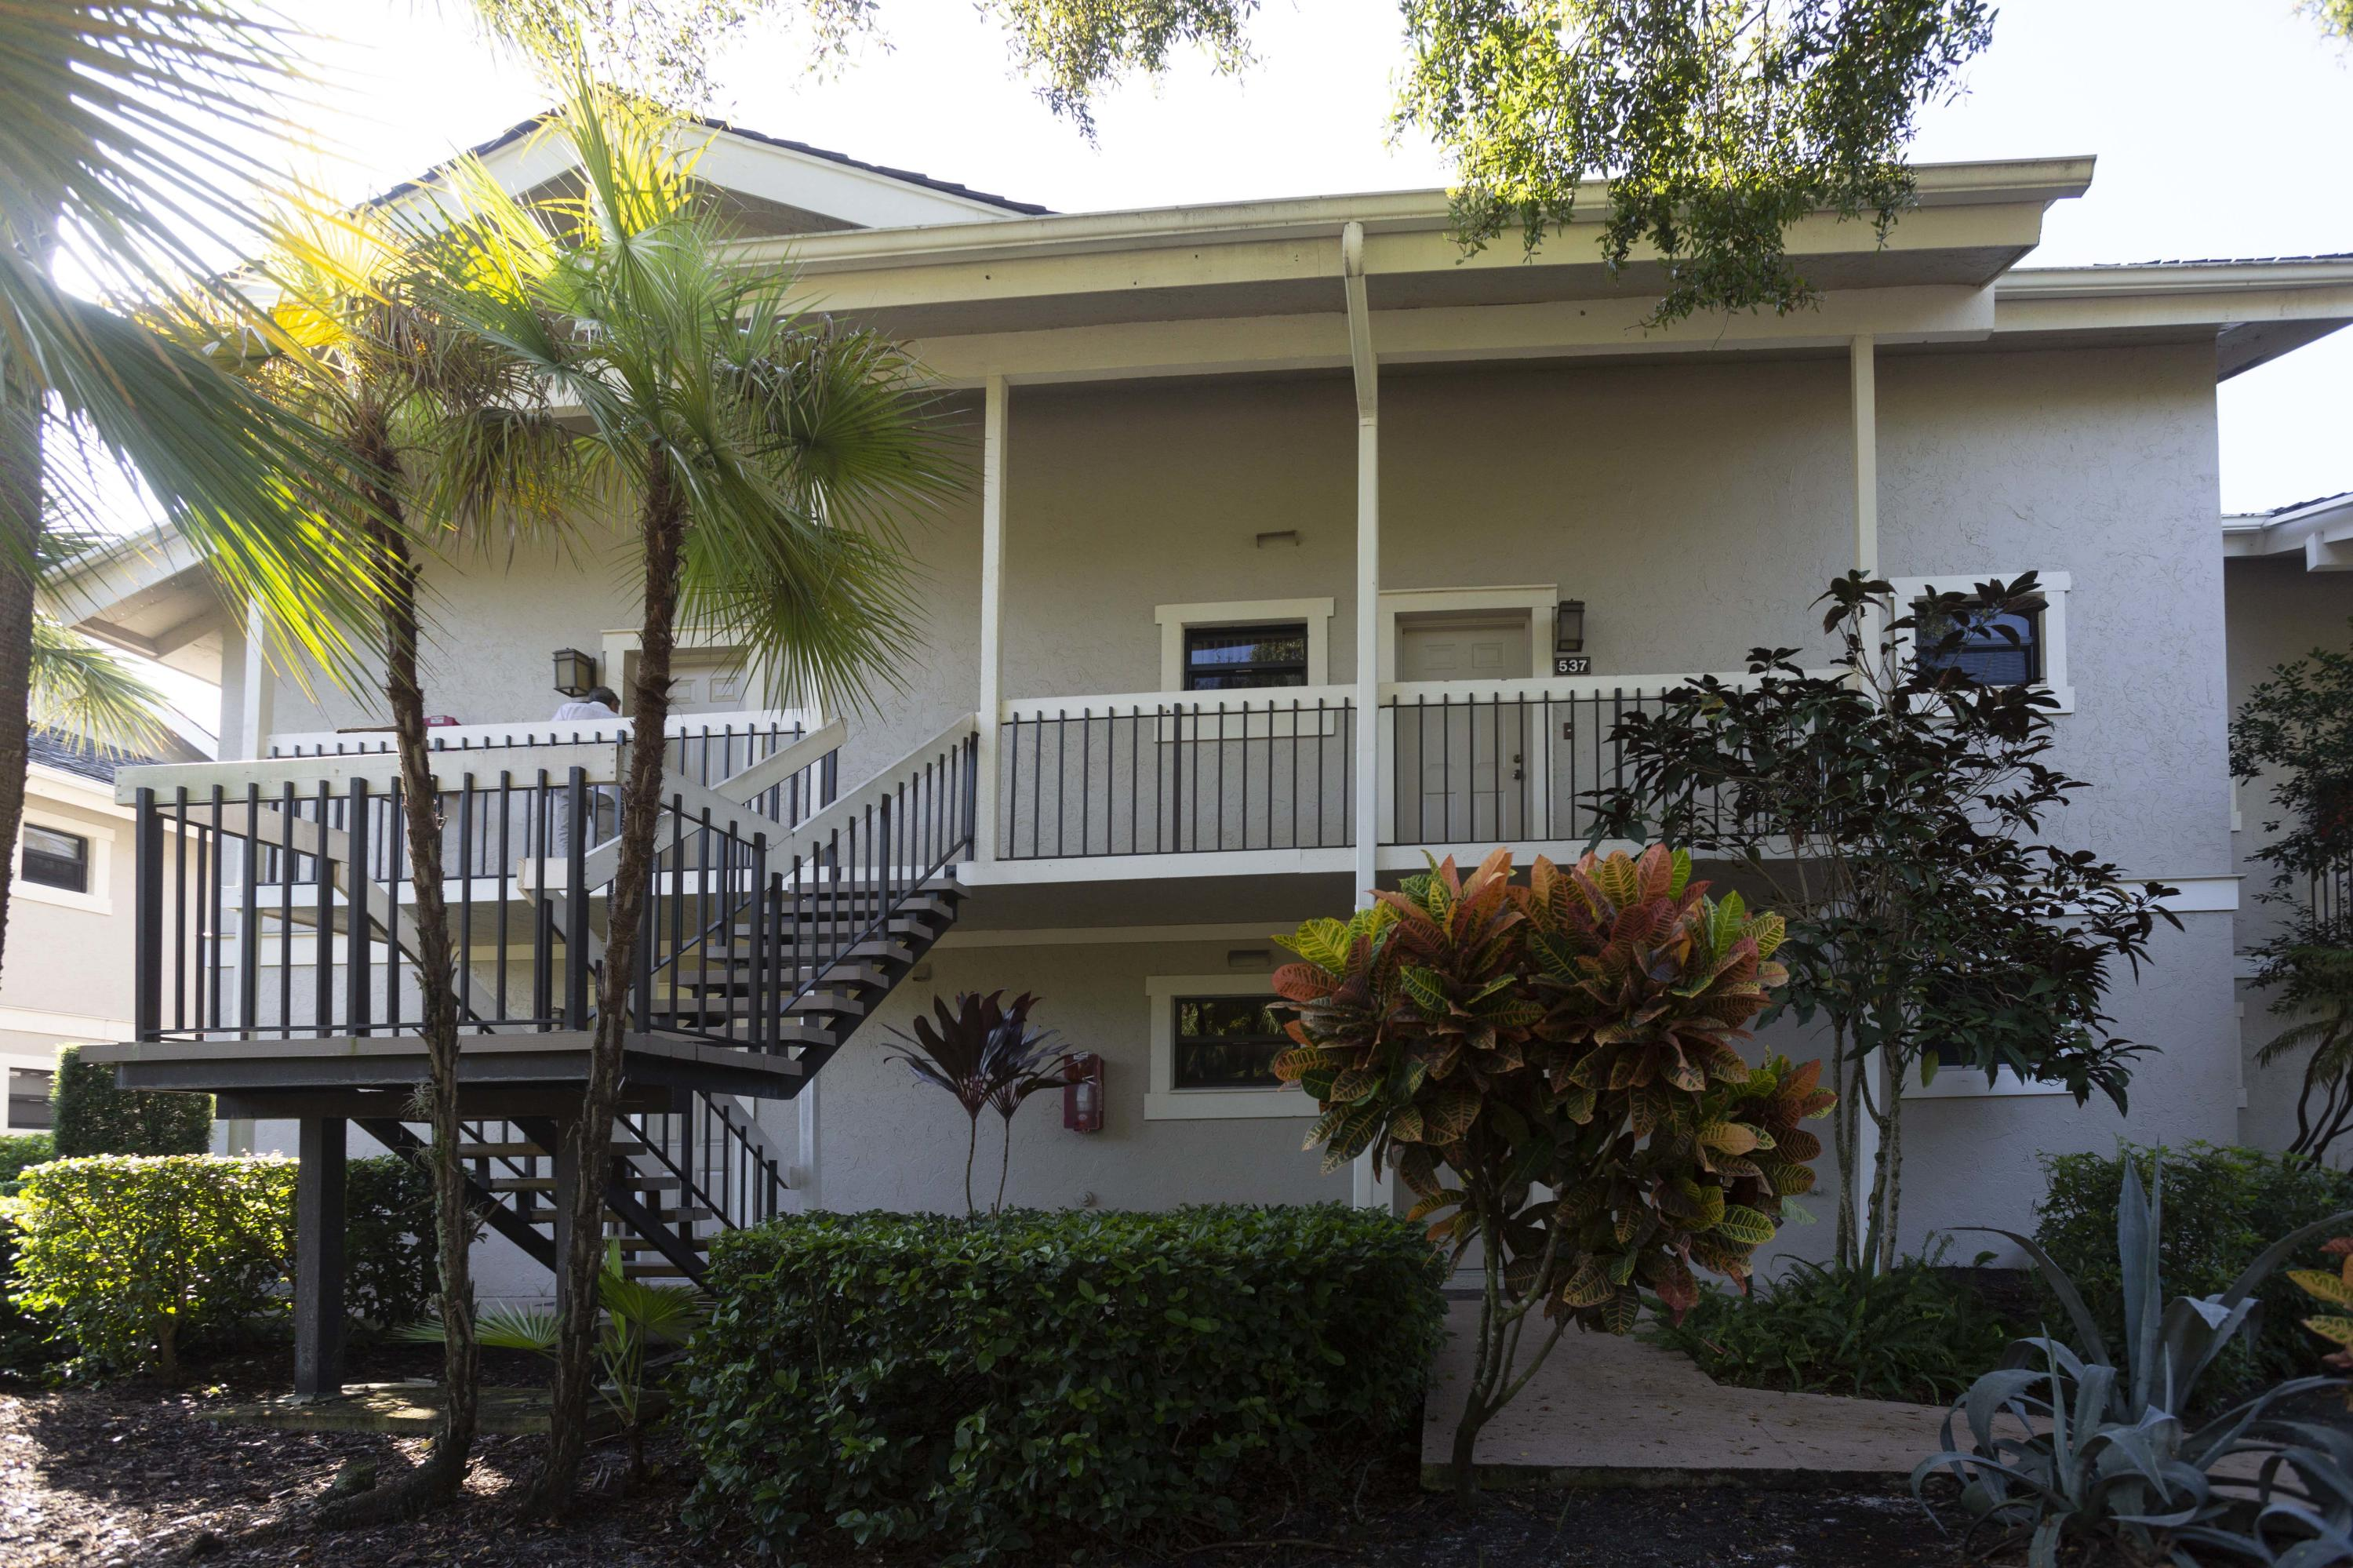 Lovely Tennis Lodge Condo Located In The Palm Beach Polo Club. Great For Investment.  Can be Rented As A Studio And A One Bedroom Or A Two Bedroom With Connecting Door.